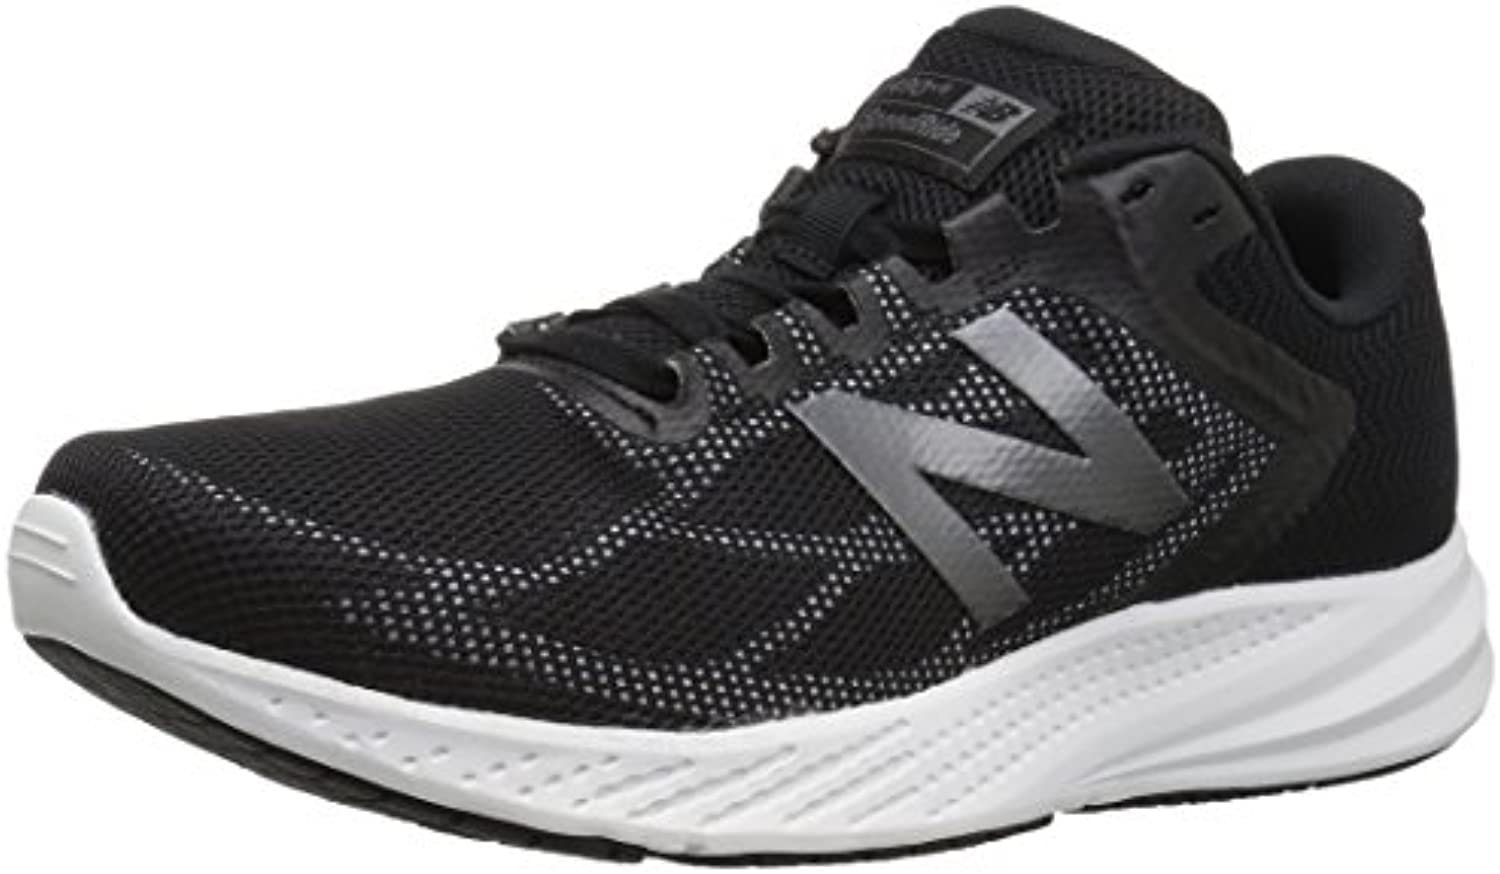 New BalanceNB18 W490V6 donna 490v6 Imbottitura Donna, Nero